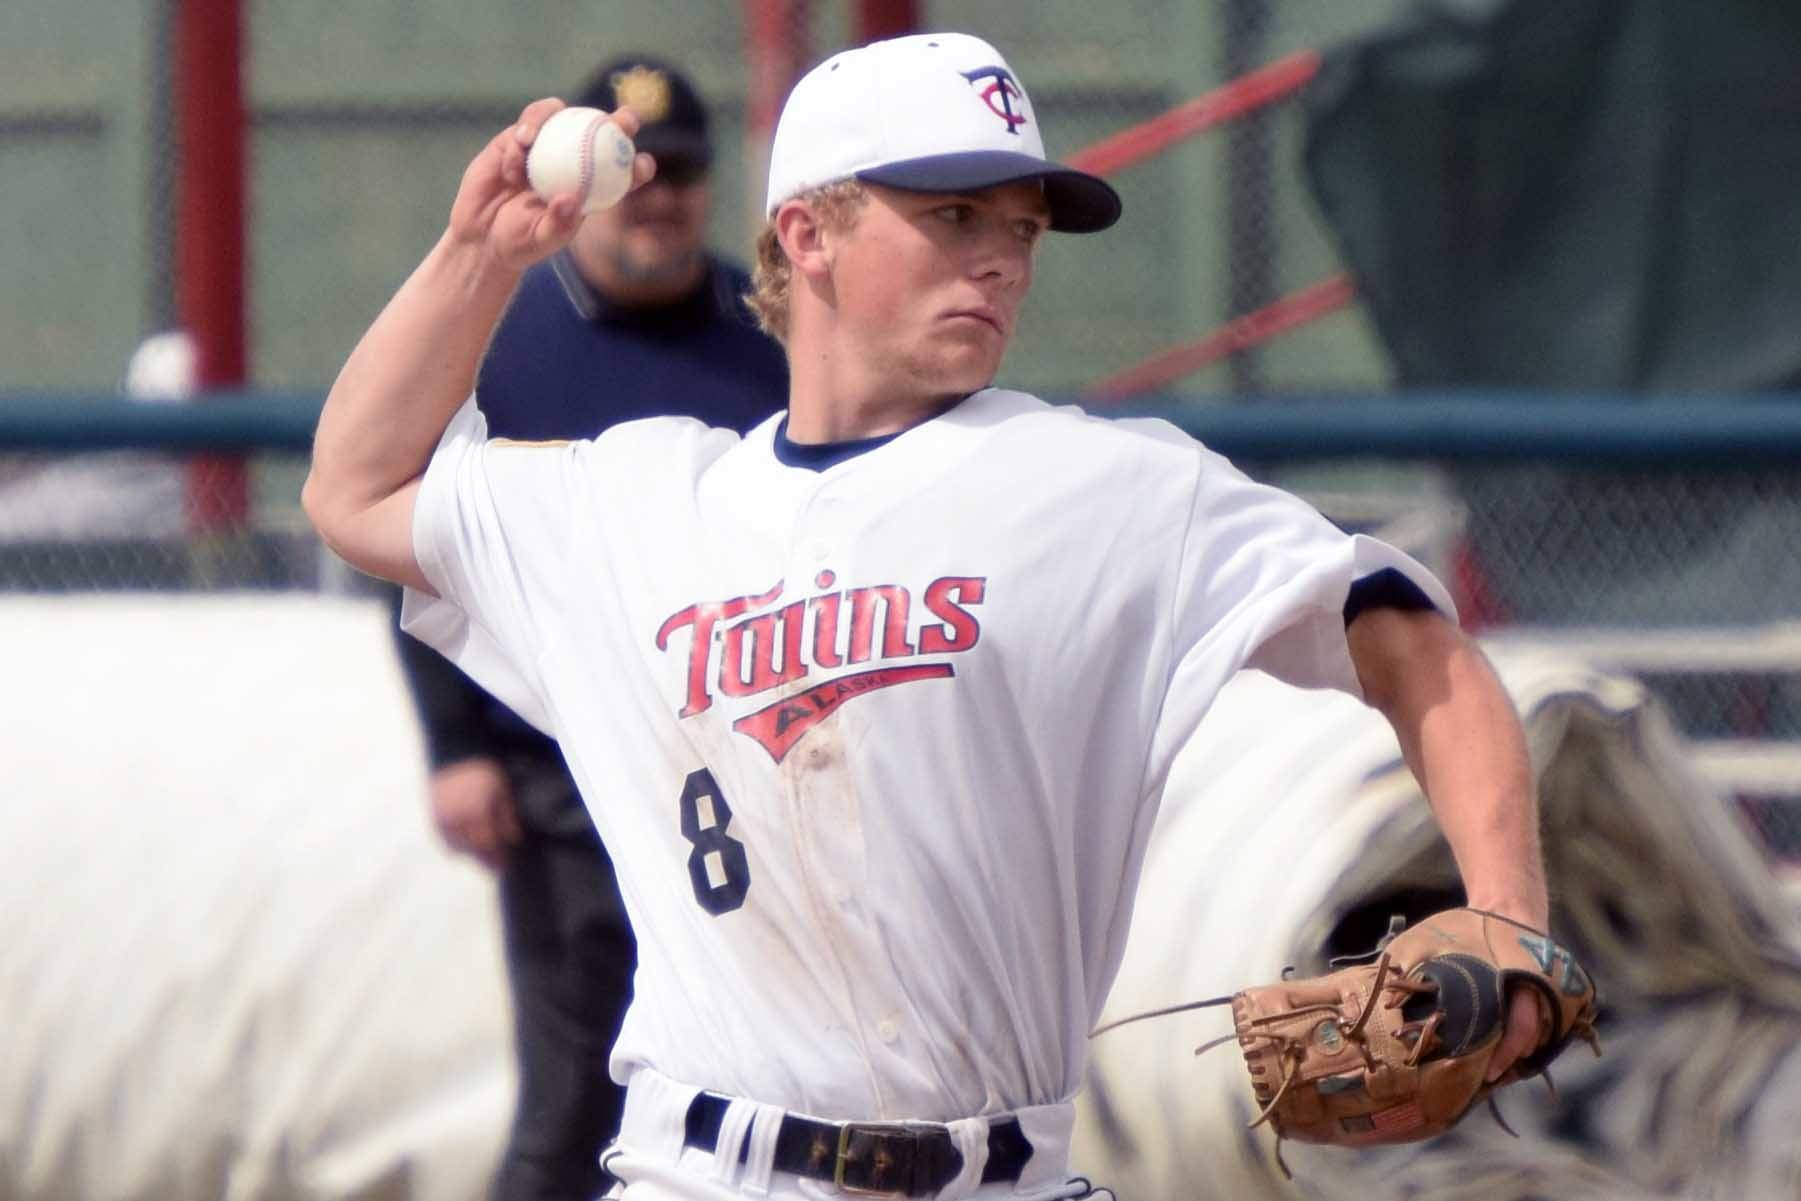 Twins starting pitcher Harrison Metz delivers to Service on Thursday, July 1, 2021, at Coral Seymour Memorial Park in Kenai, Alaska. (Photo by Jeff Helminiak/Peninsula Clarion)